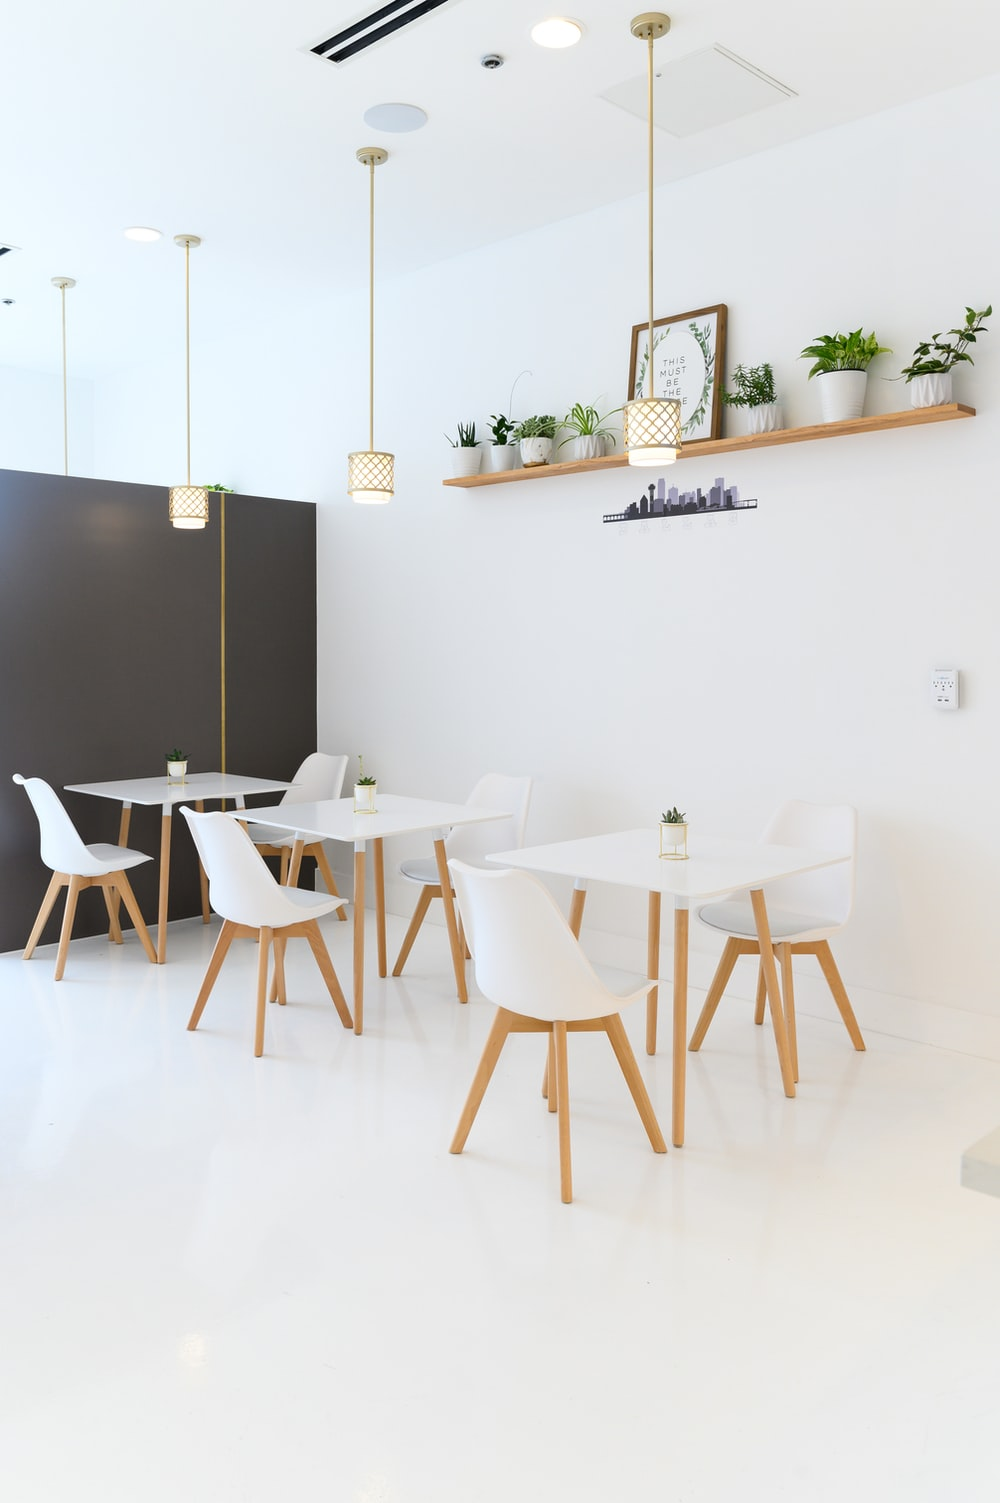 white table and chairs near black wall